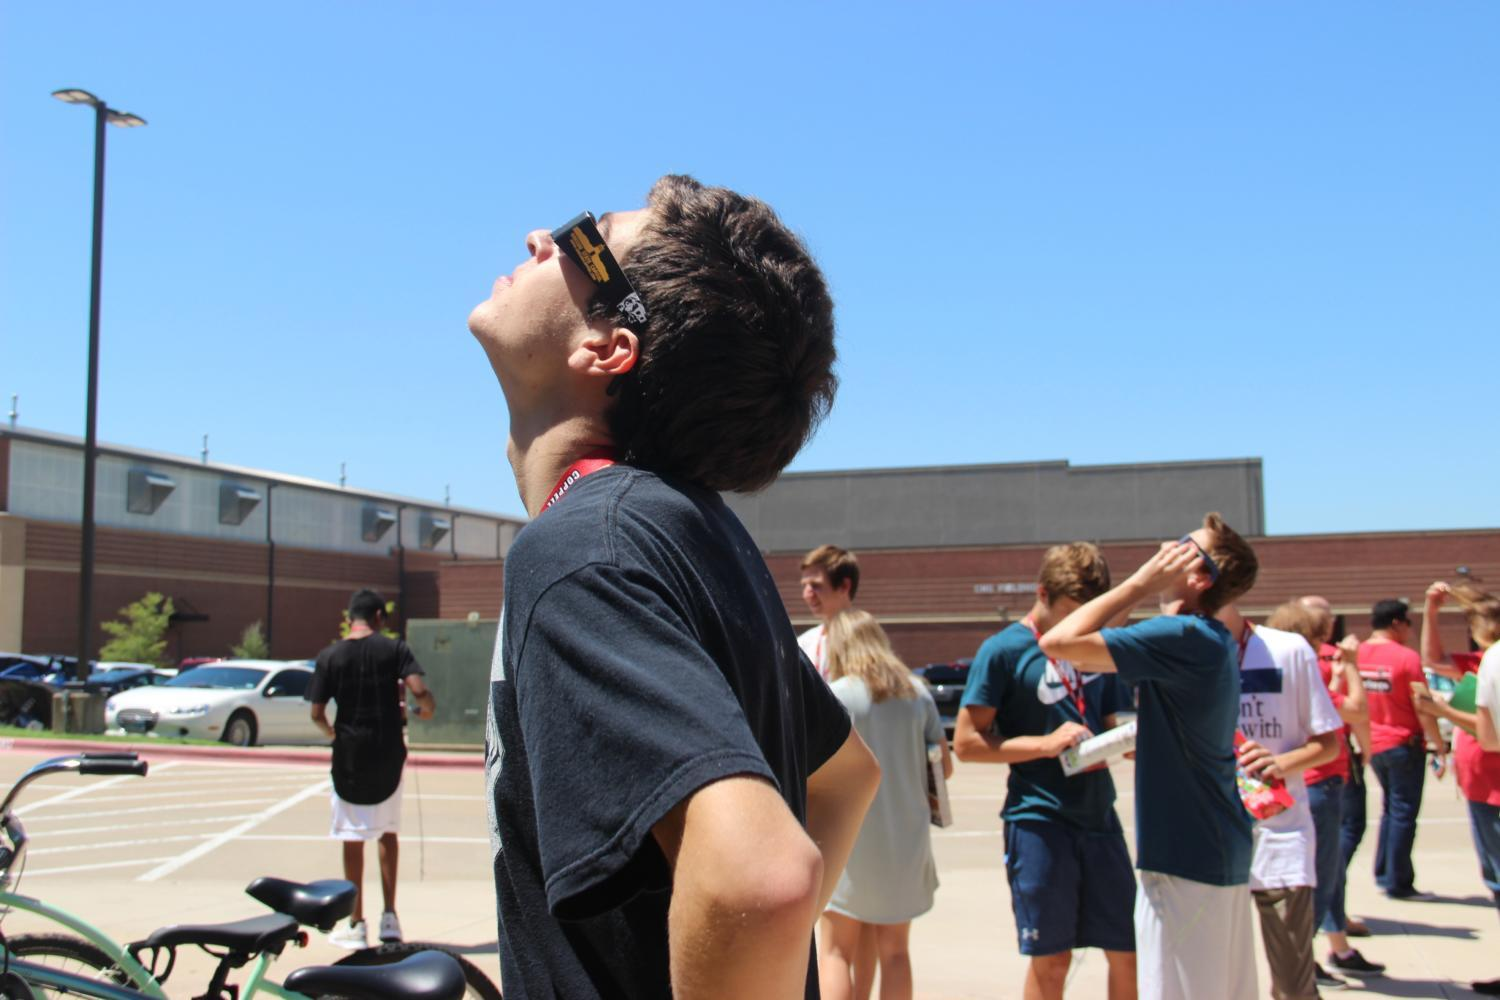 Coppell+High+School+senior+Jordan+Whiteley+observes+the+peak+of+the+solar+eclipse+in+front+of+the+fieldhouse+on+Monday.+All+of+the+students+used+specialized+glasses+or+homemade+viewing+devices+to+safely+experience+the+phenomenon.